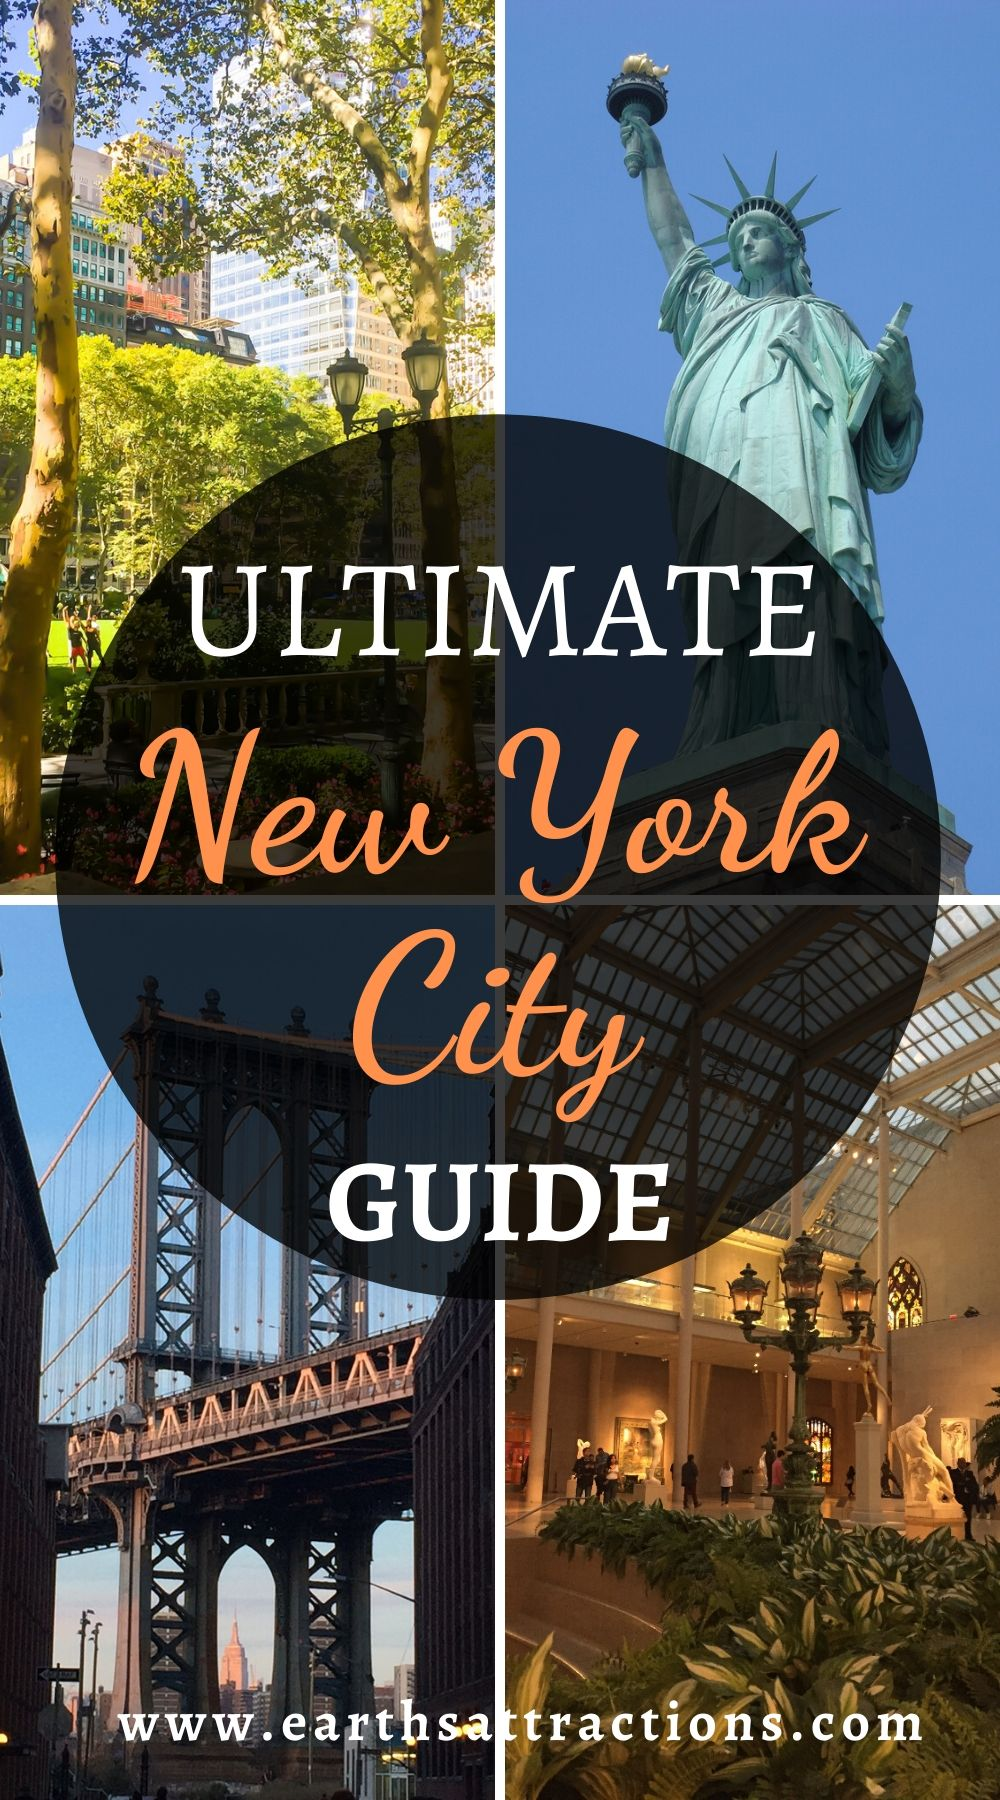 Ultimate New York City Guide. Discover what to do in NYC USA according to a local. The best places to visit in New York City and cool restaurants in New York City. Use this NYC guide to plan your NYC trip! #nyc #USA #nycguide #newyorkcity #usatravel #usaguide